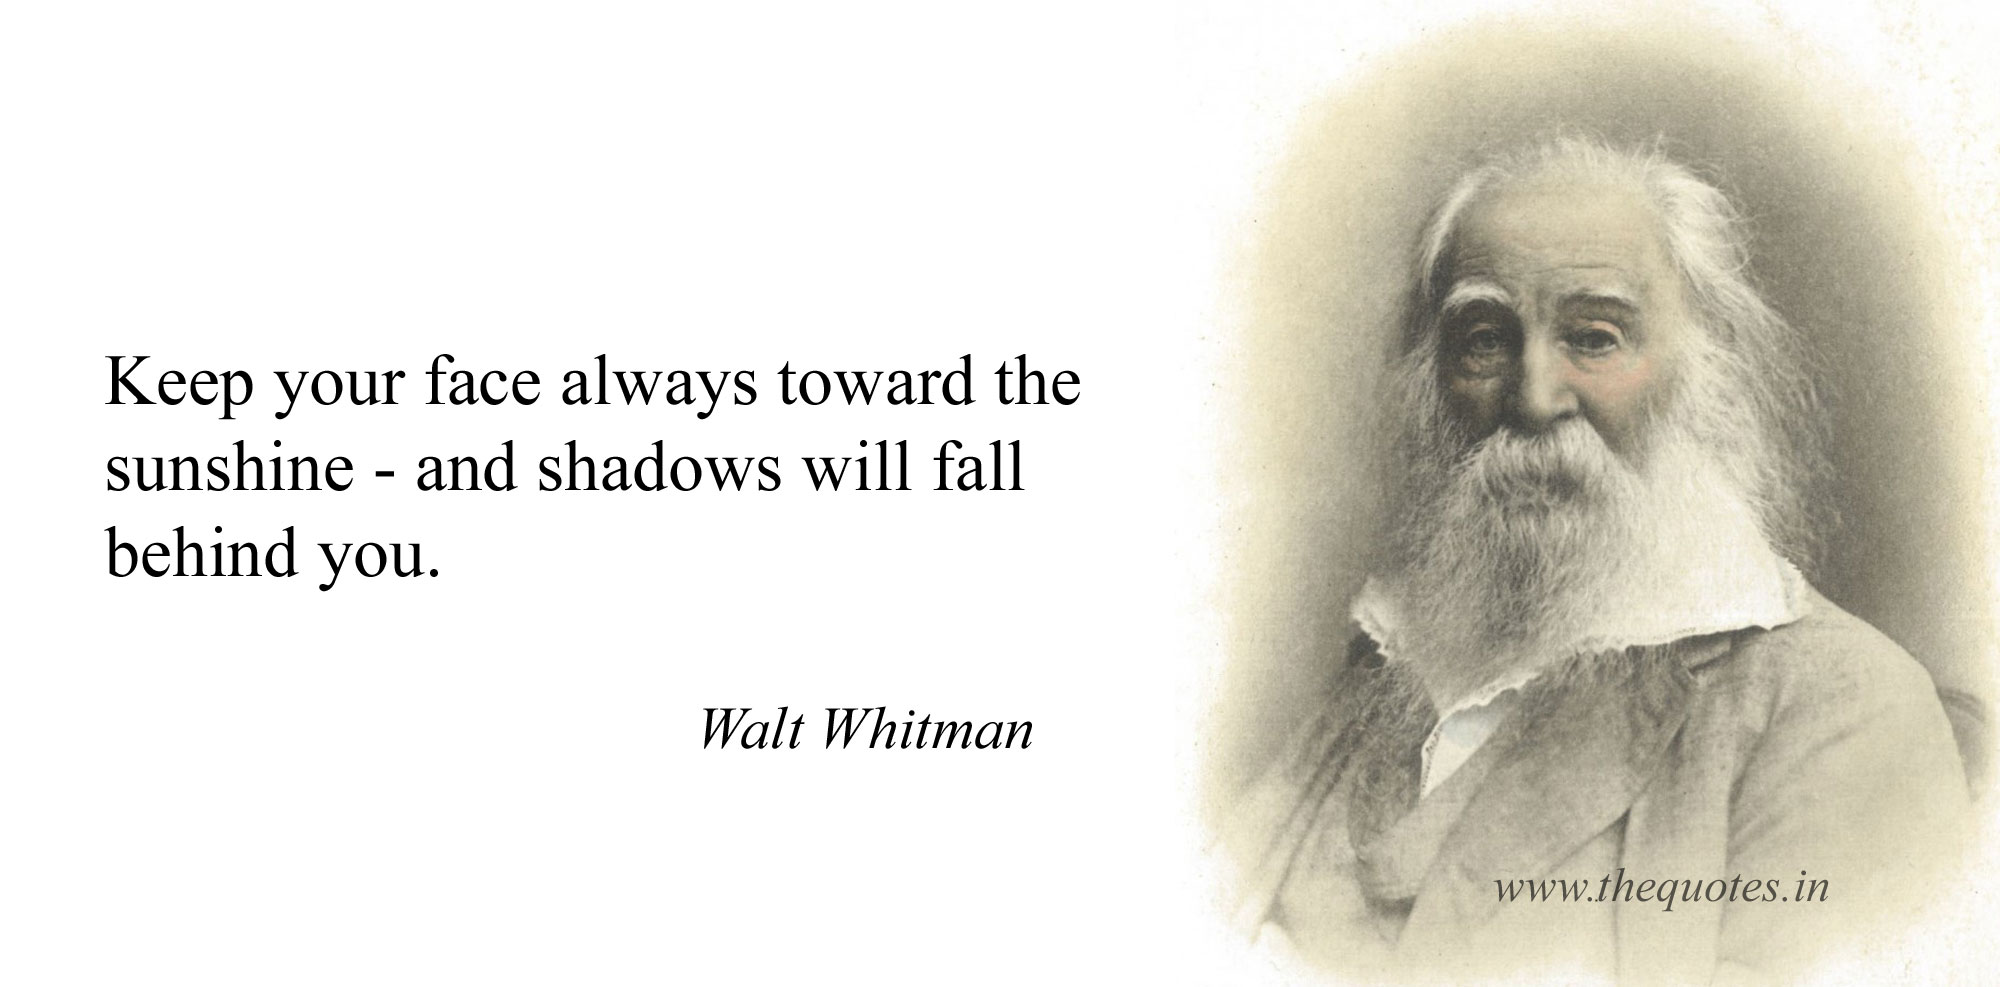 Walt-Whitman-Quotes-1.jpg